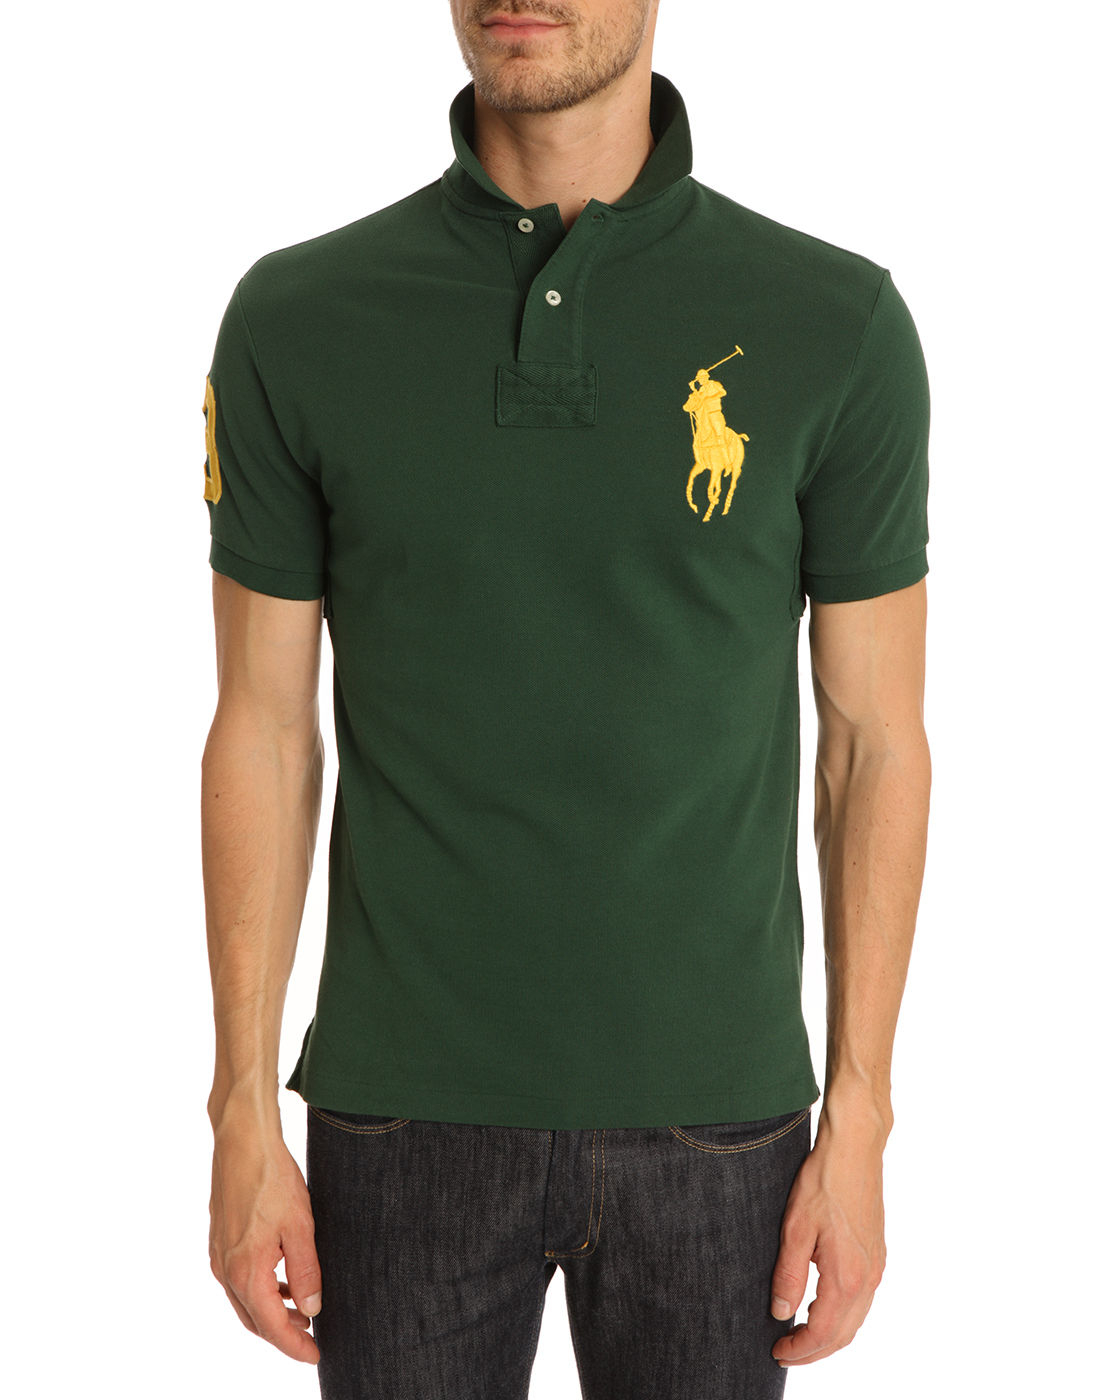 Buy Polo Ralph Lauren Men\u0026#39;s Big Pony Green and Gold Polo Shirt, starting at $85. Similar products also available. SALE now on!